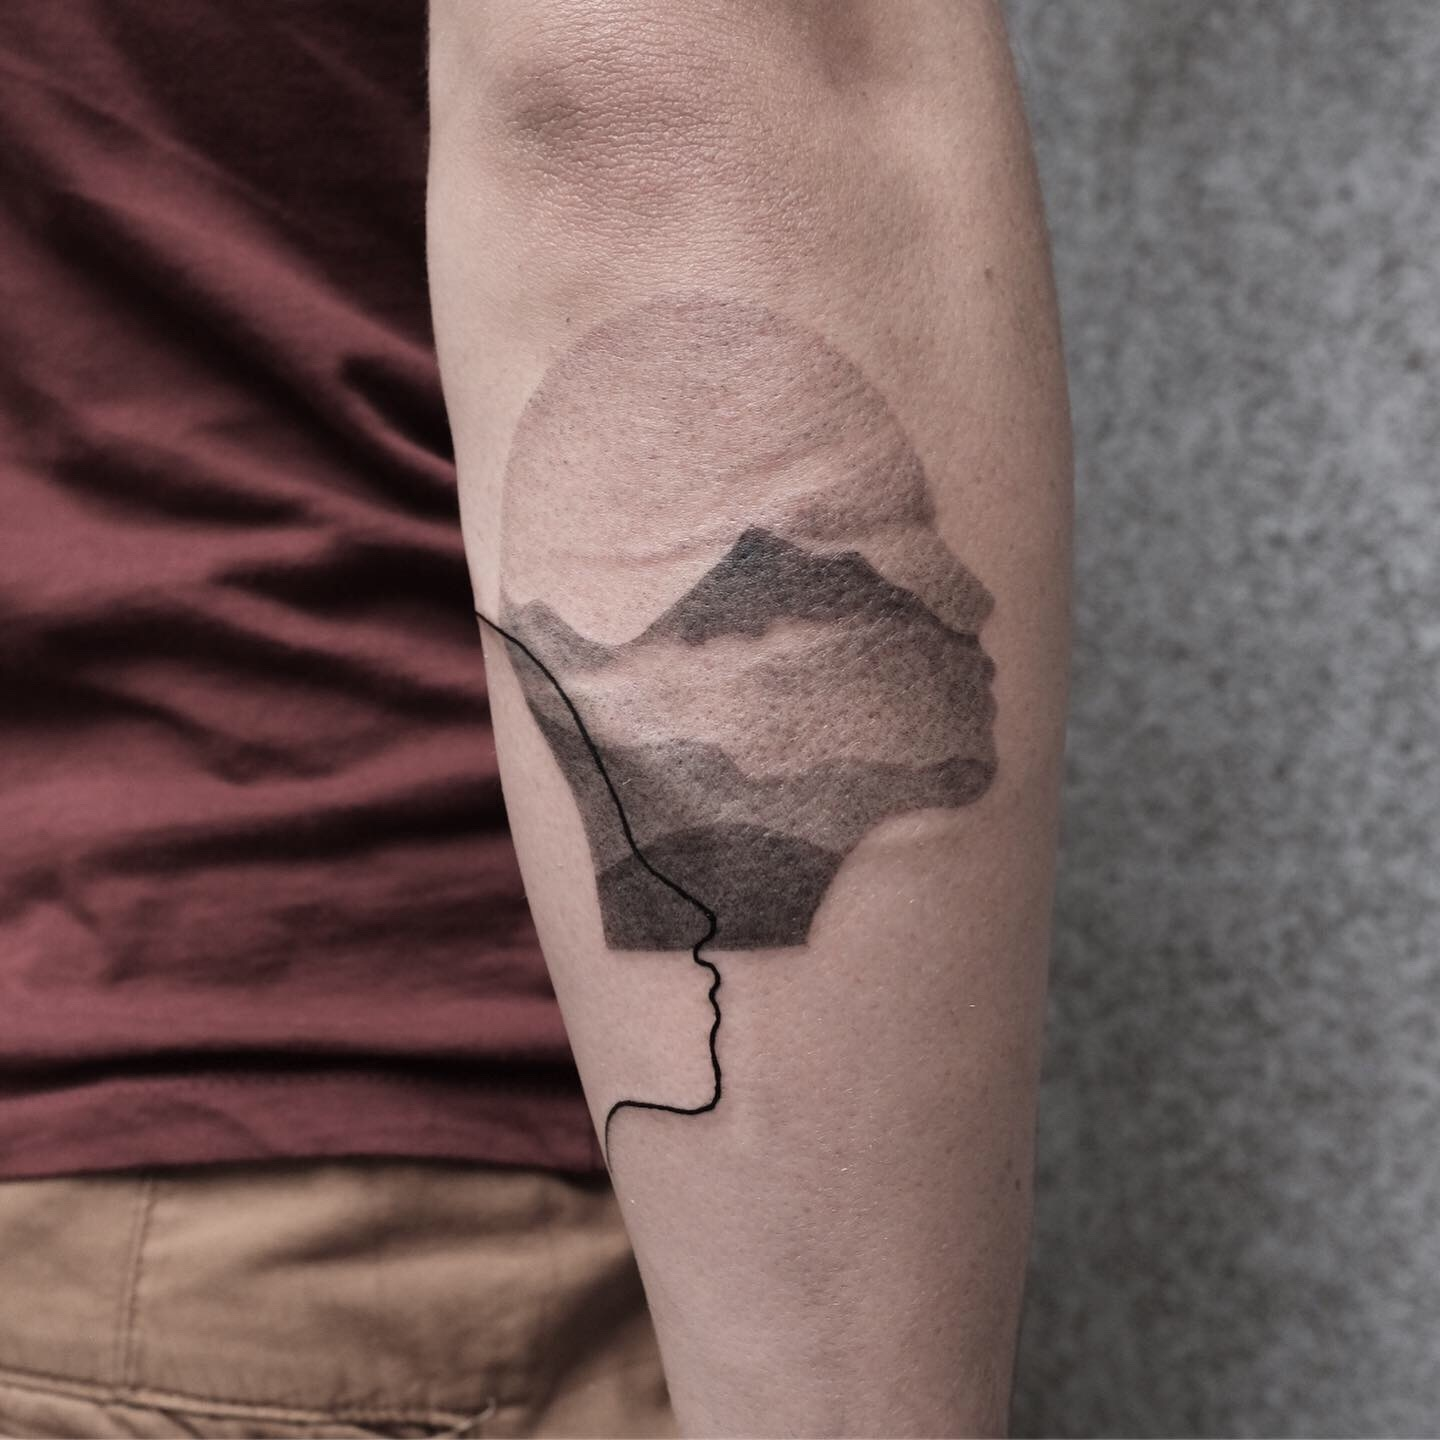 Inksearch tattoo Axel Ejsomnt